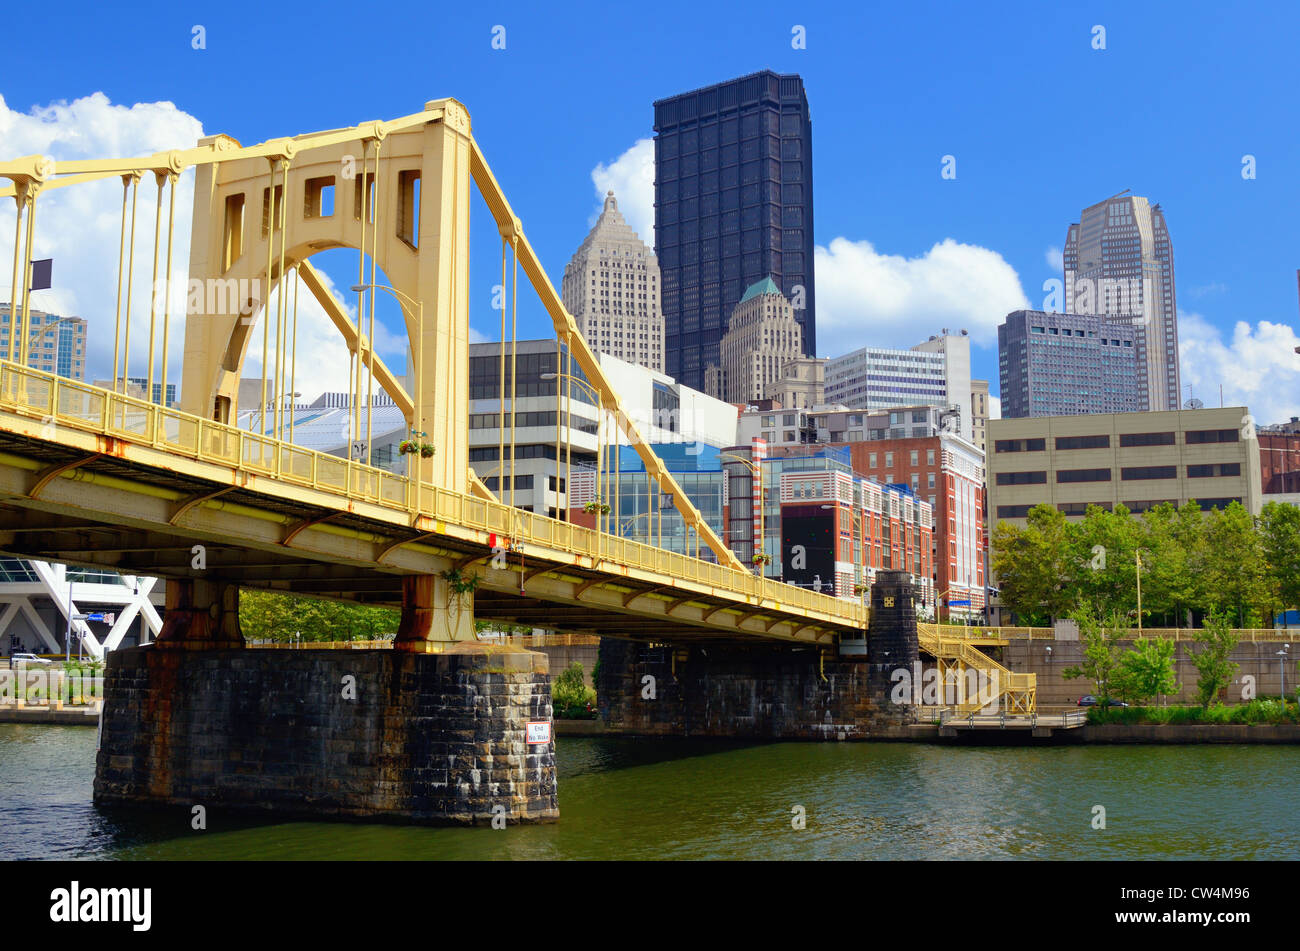 Skyscrapers in downtown at the waterfront of Pittsburgh, Pennsylvania, USA. - Stock Image